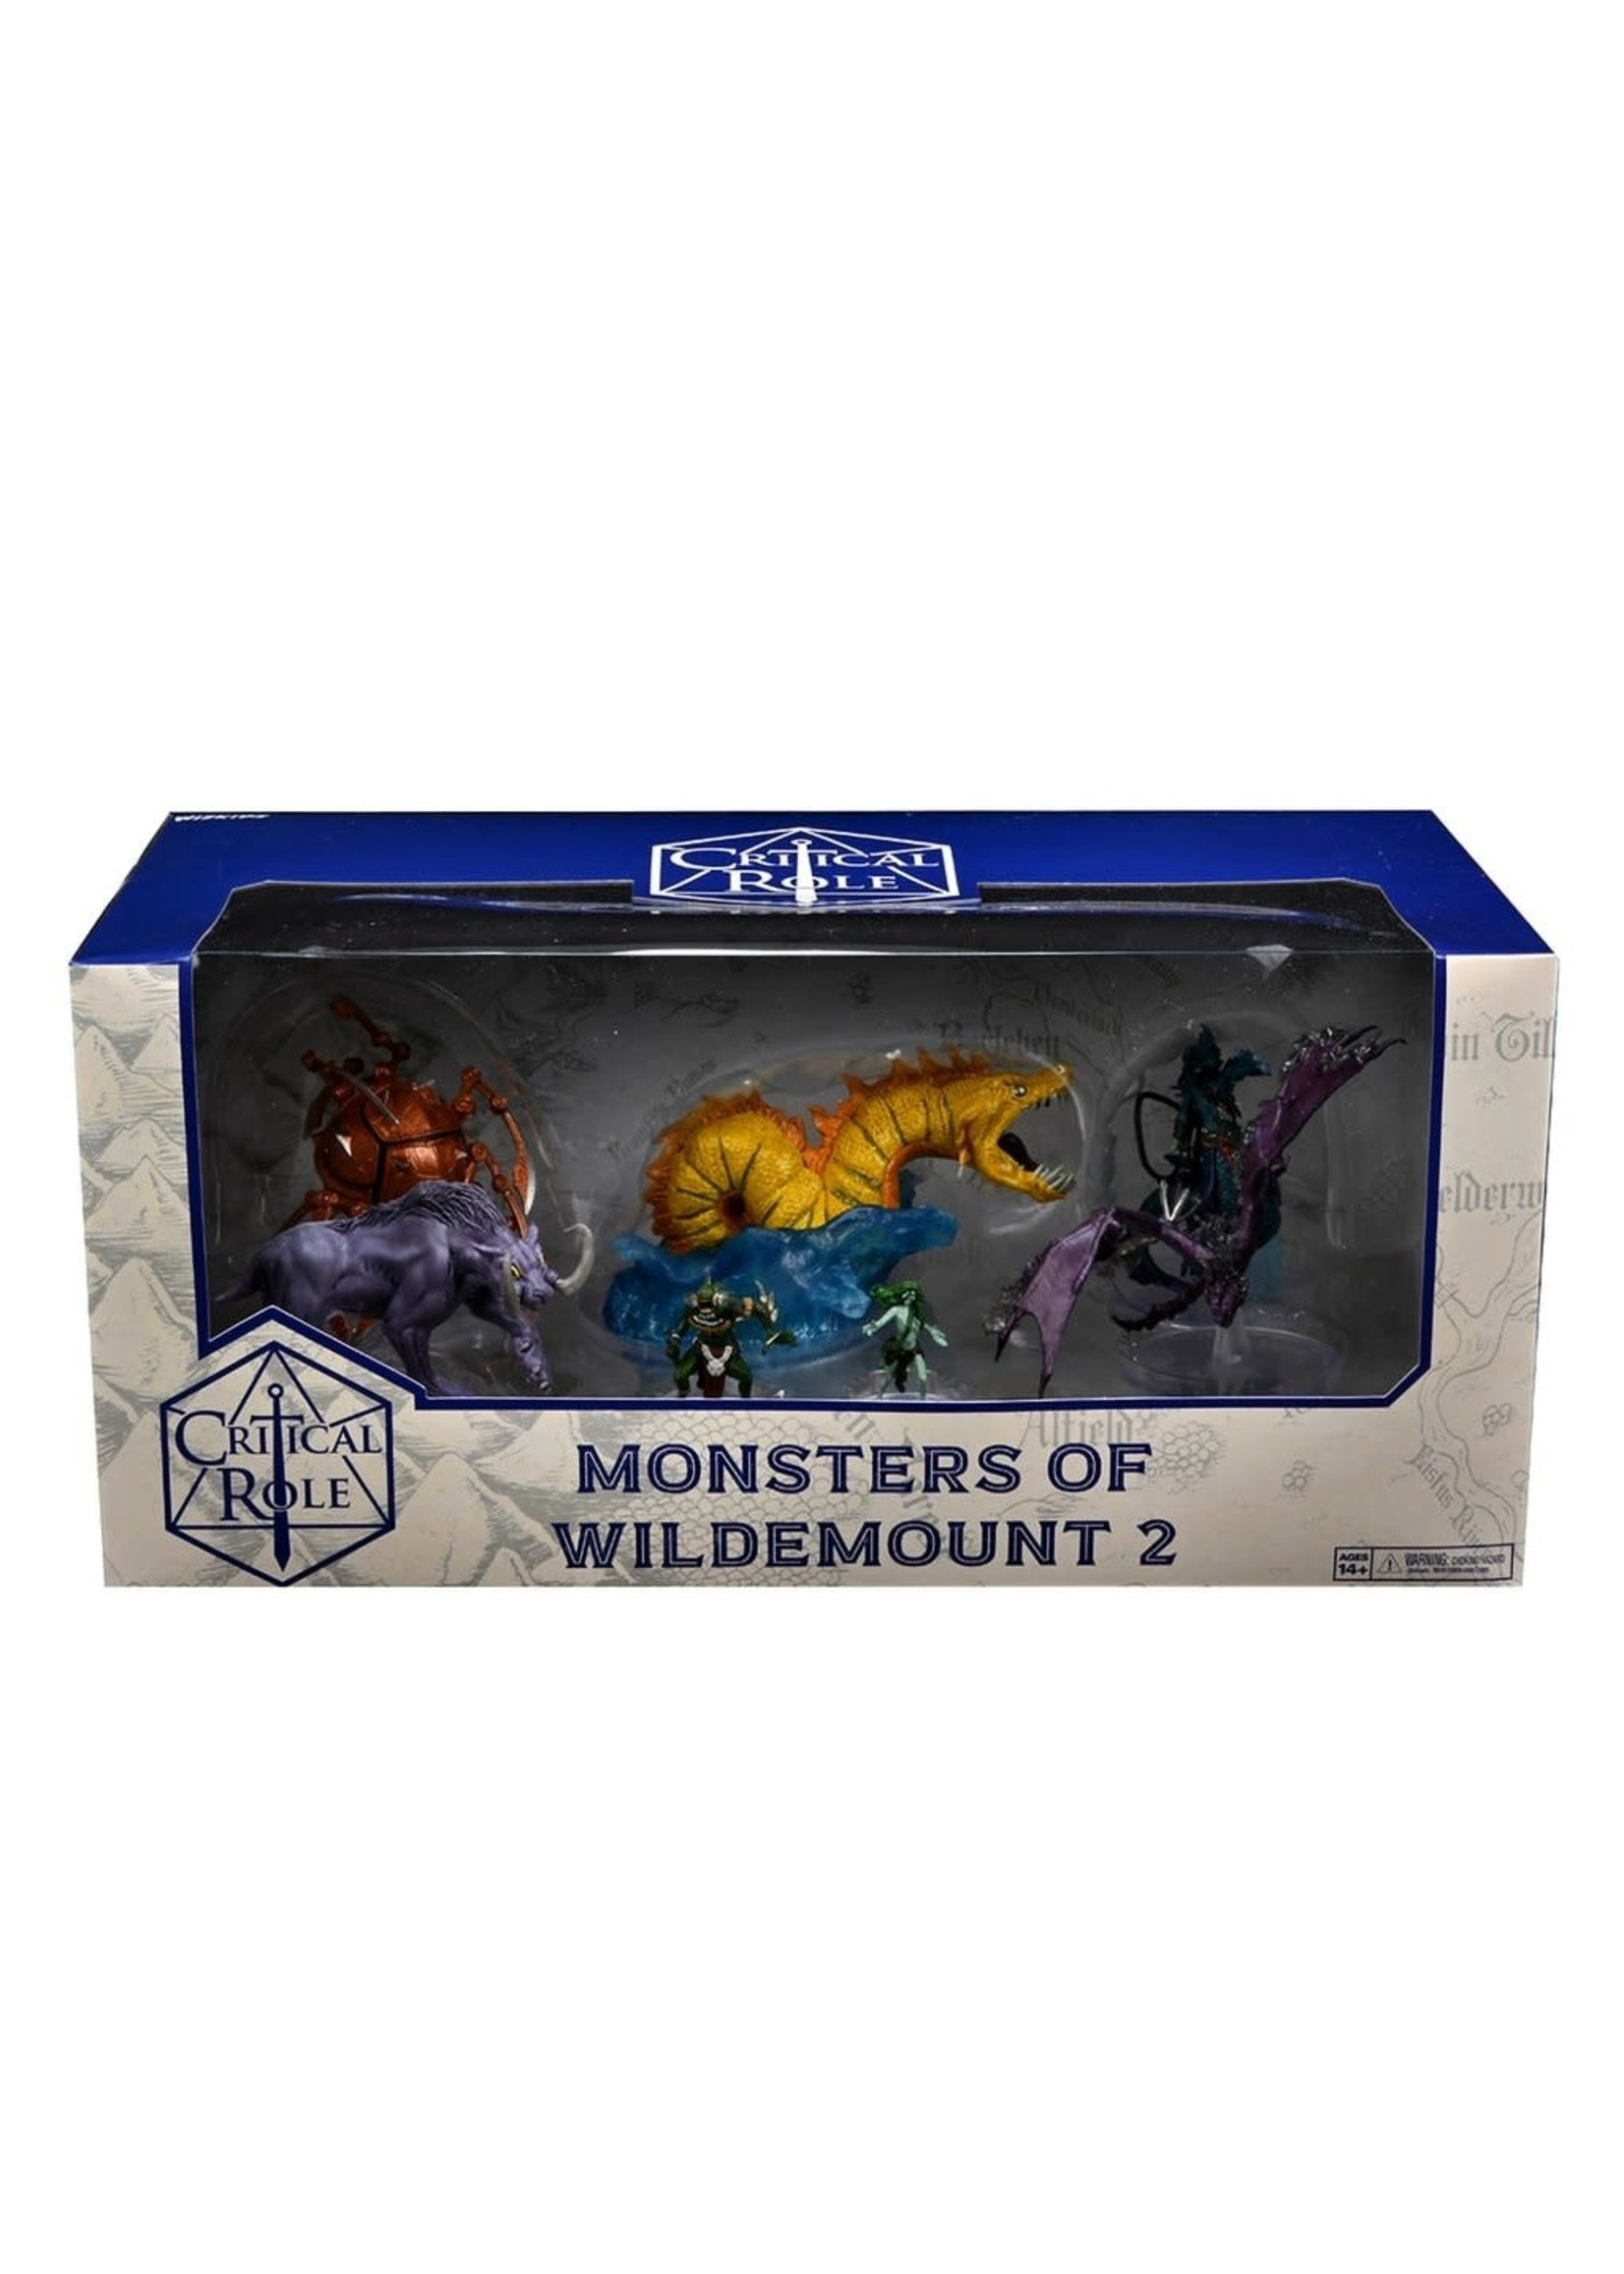 Critical Role: Monsters of Wildemount 2 Box Set